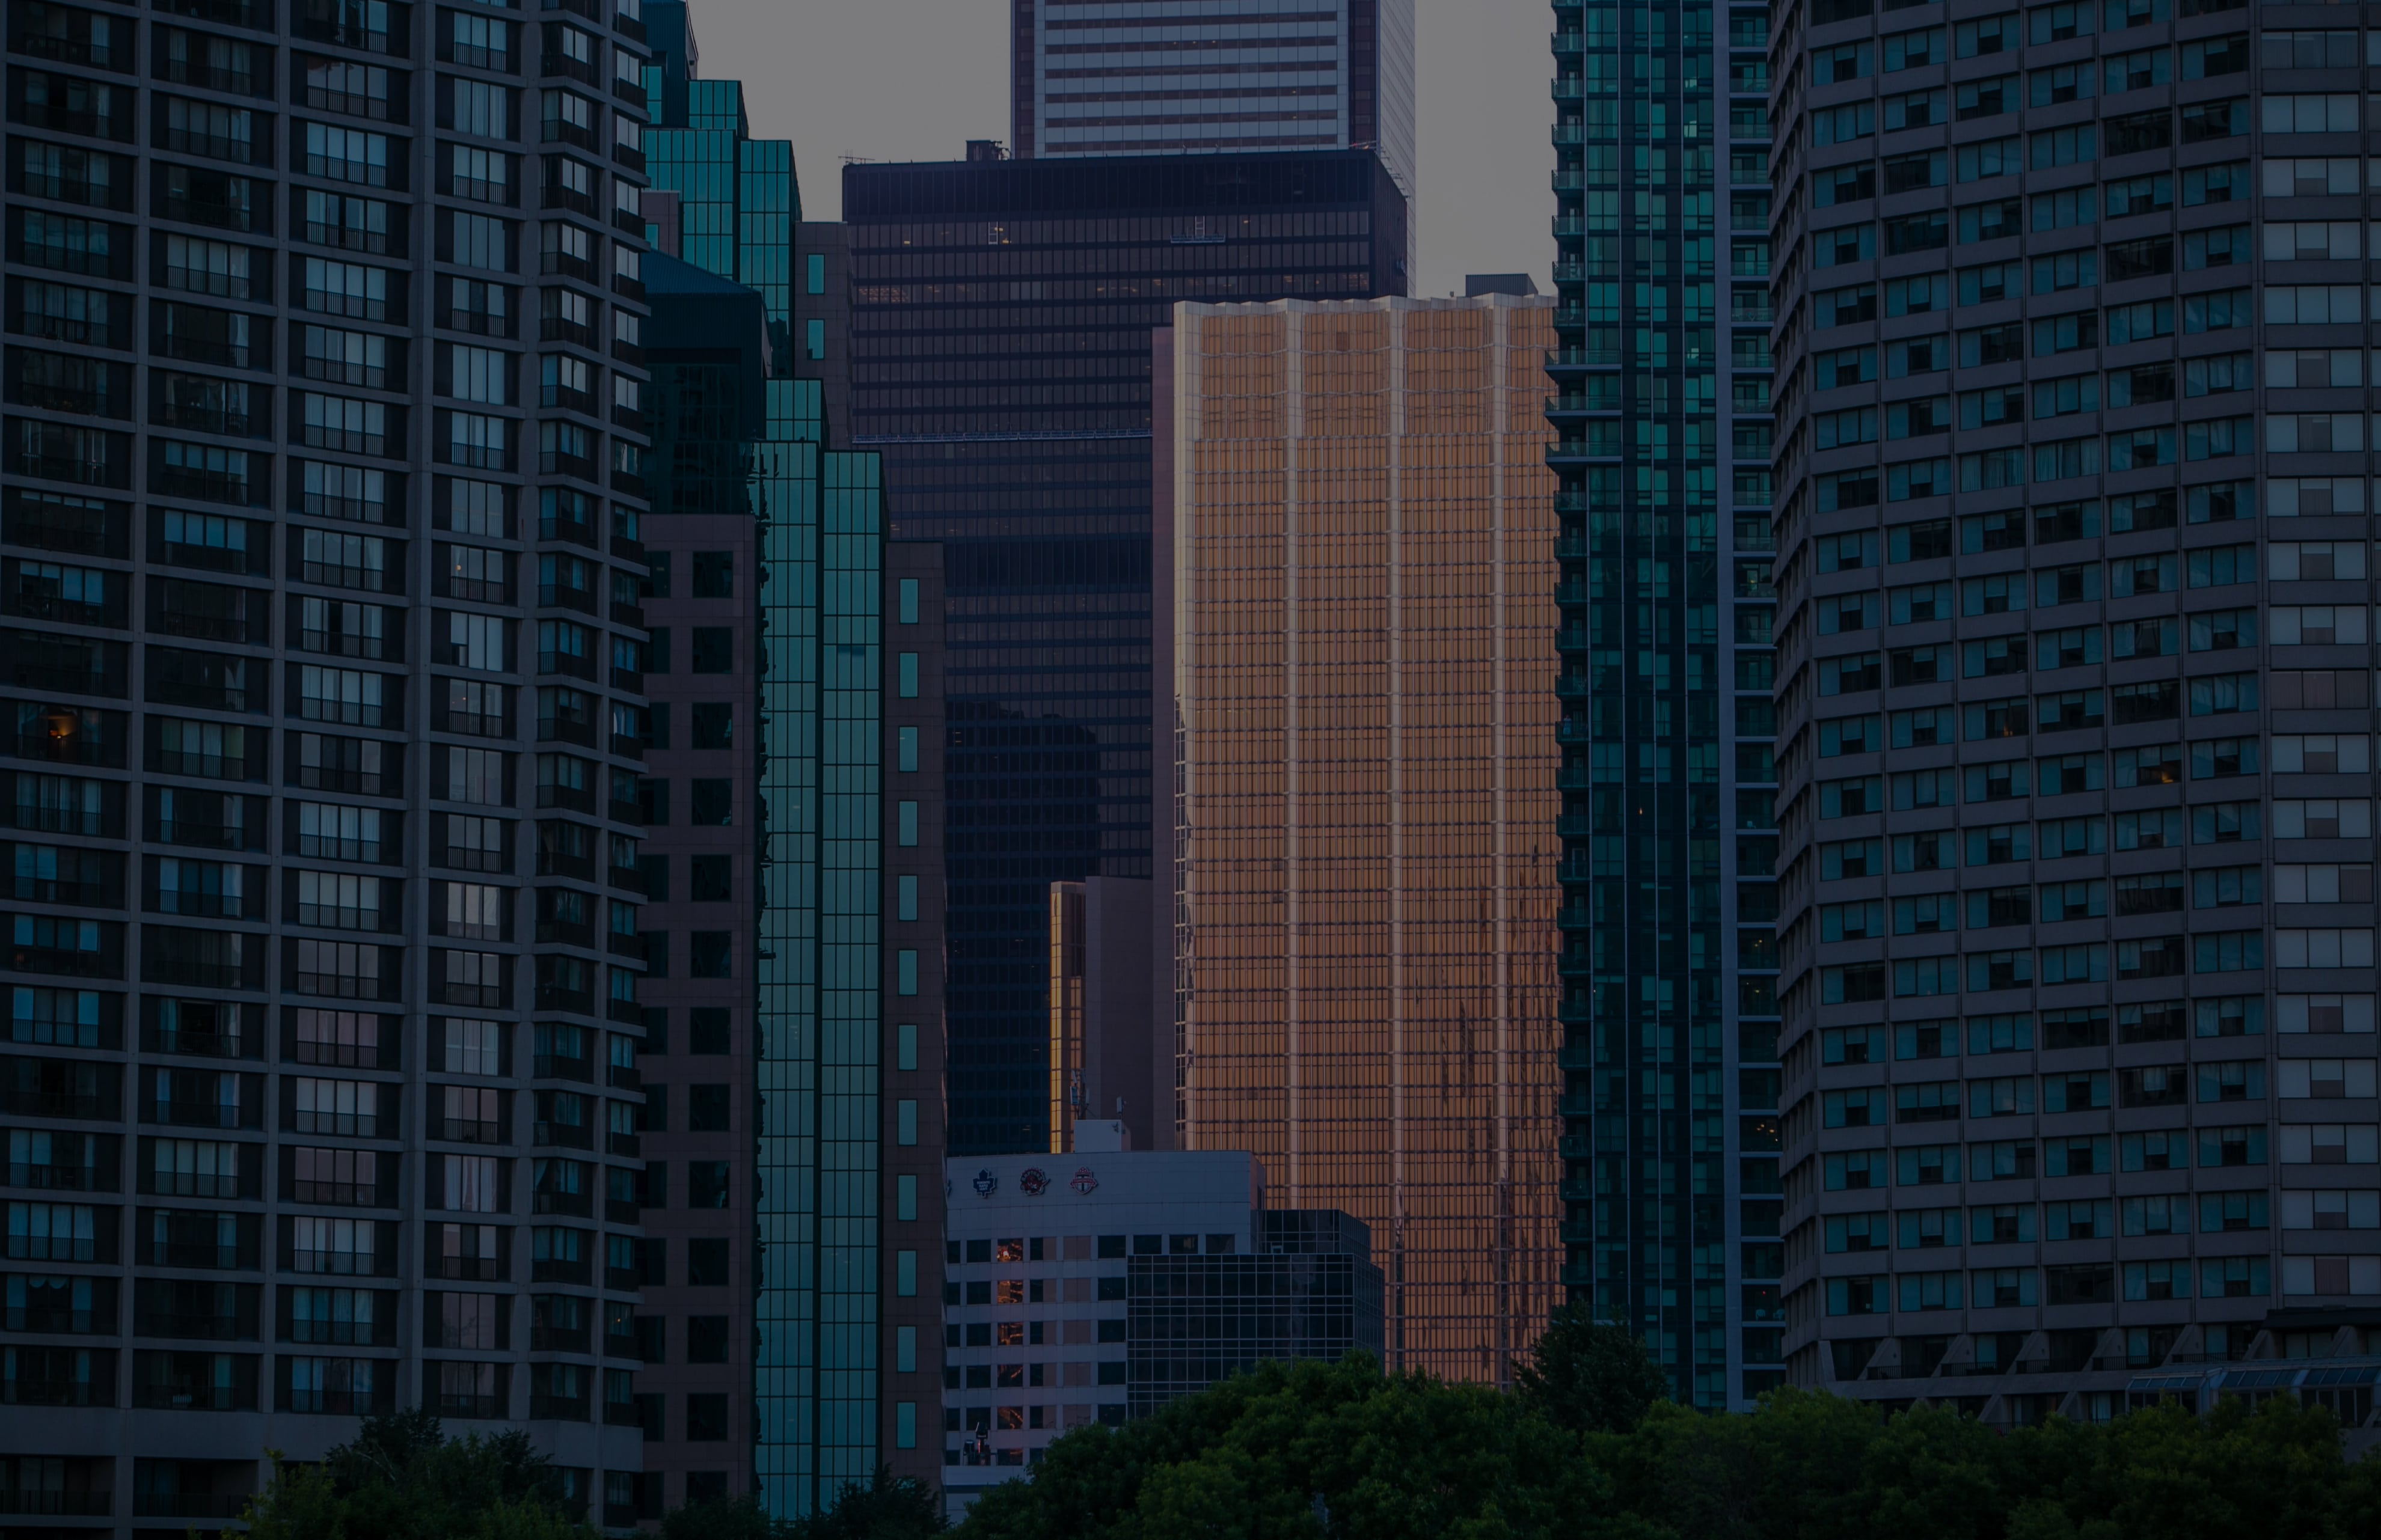 Array of skyscrapers